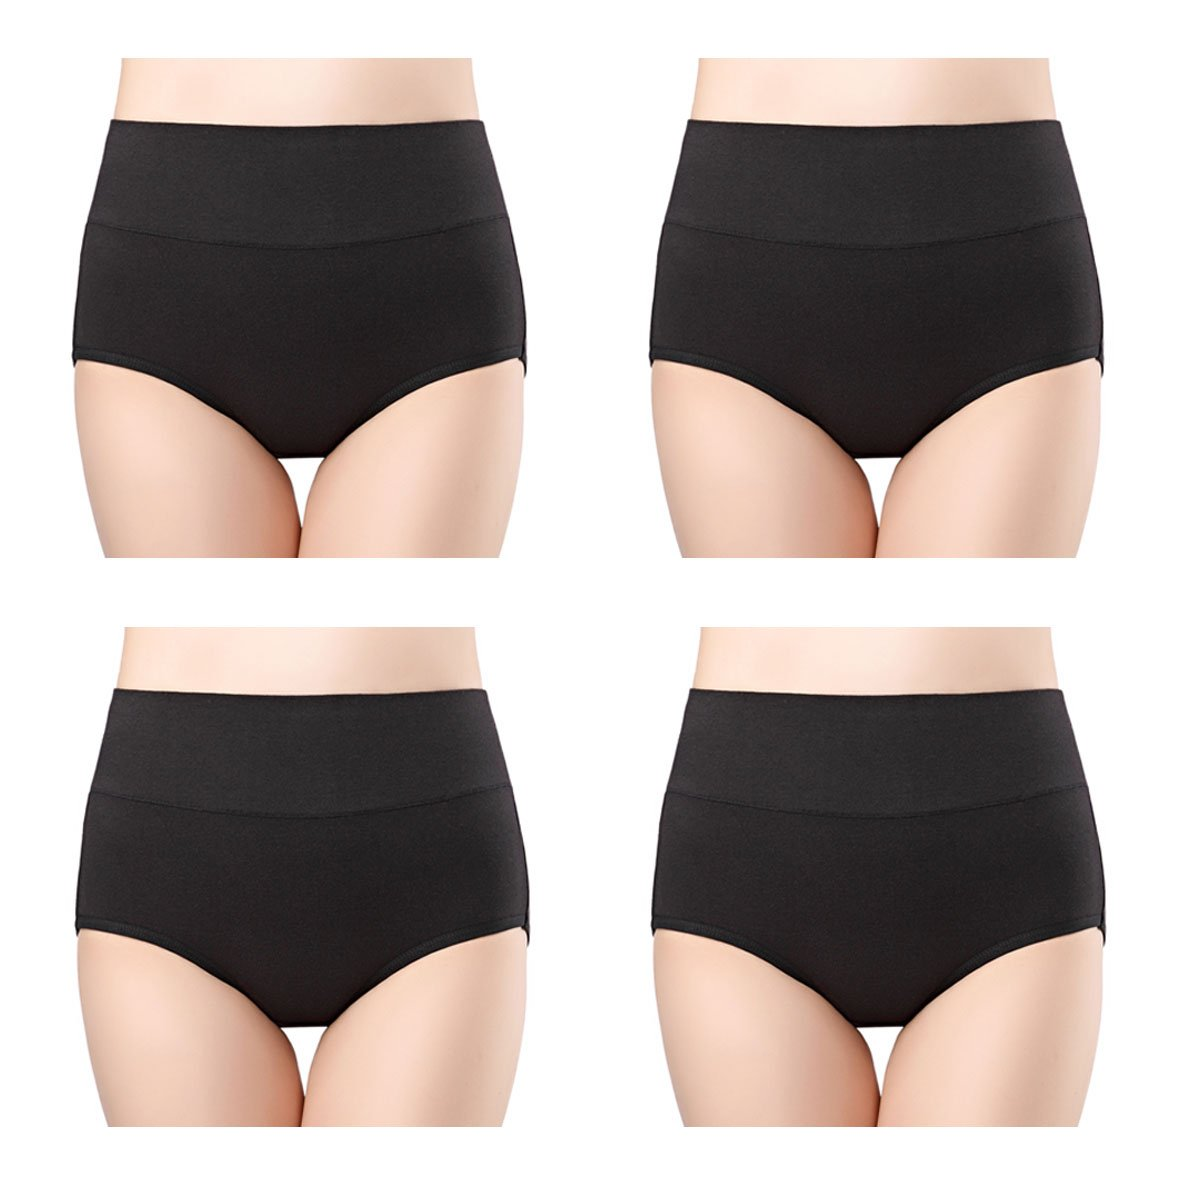 6b4e11034eb9 wirarpa Women's Soft Cotton Knickers High Waisted Full Briefs Panties  Ladies Stretchy Pants Underwear Multipack product